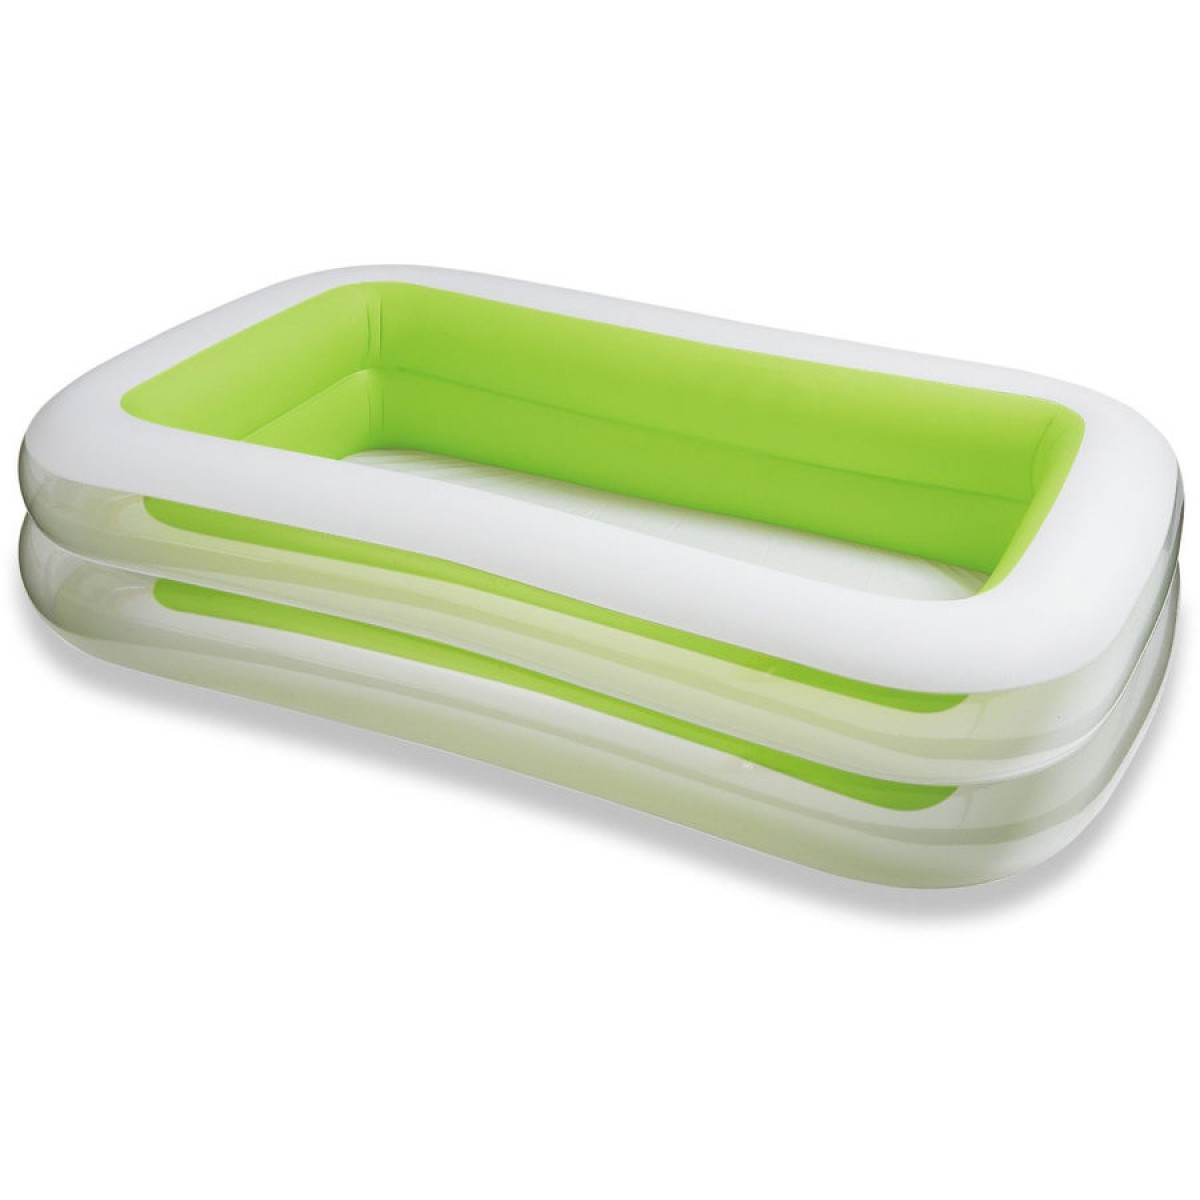 Piscine gonflable verte for Algue rouge piscine